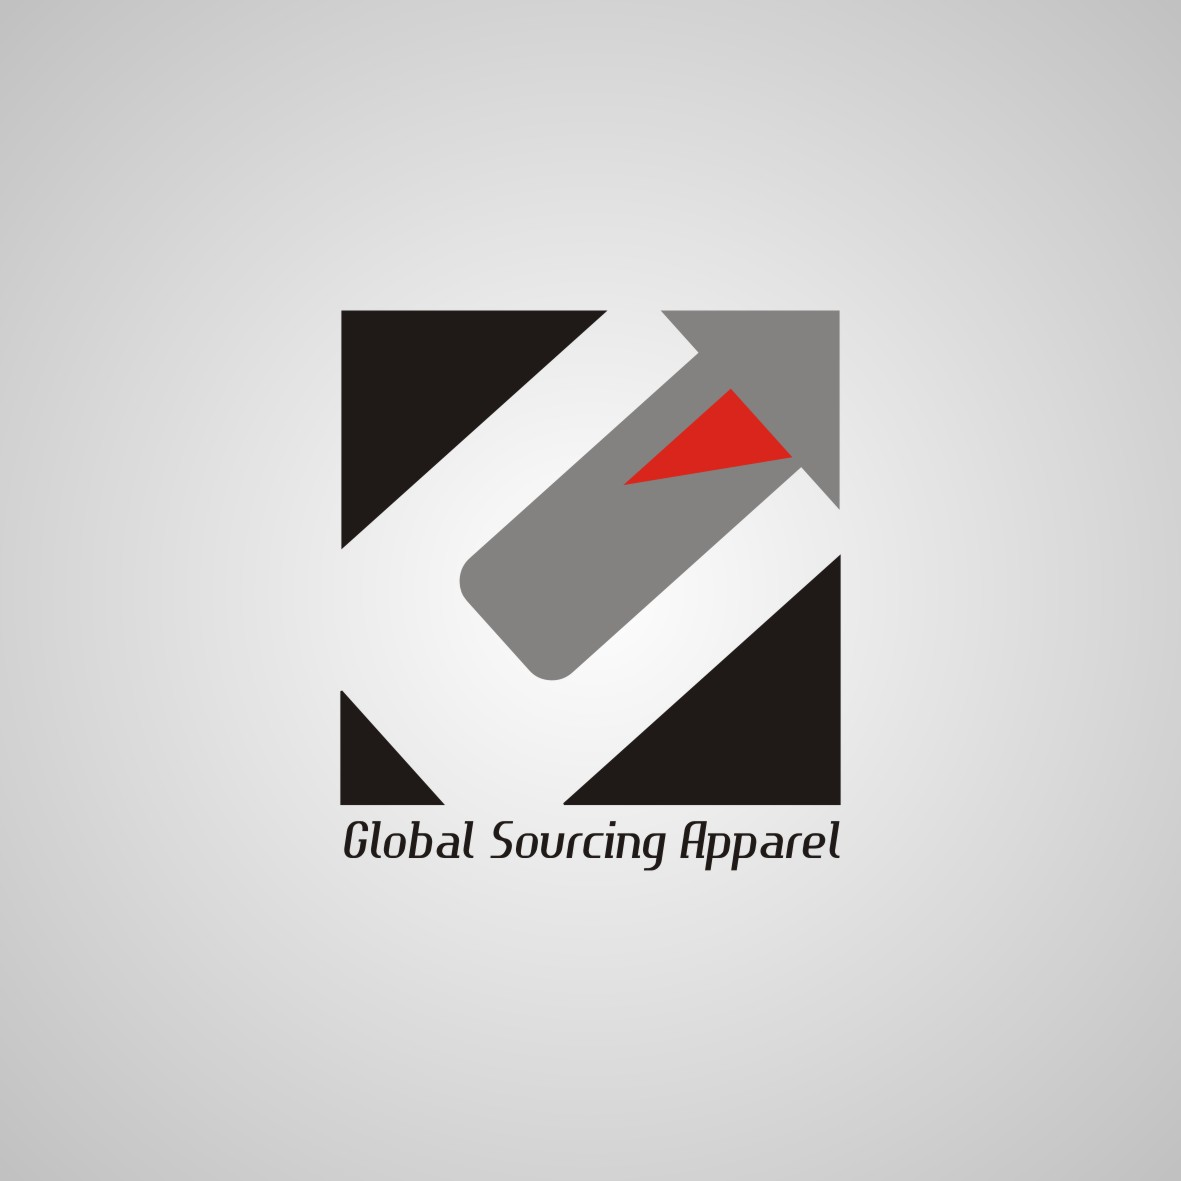 Logo Design by arteo_design - Entry No. 84 in the Logo Design Contest Fun Logo Design for Global Sourcing Apparel.